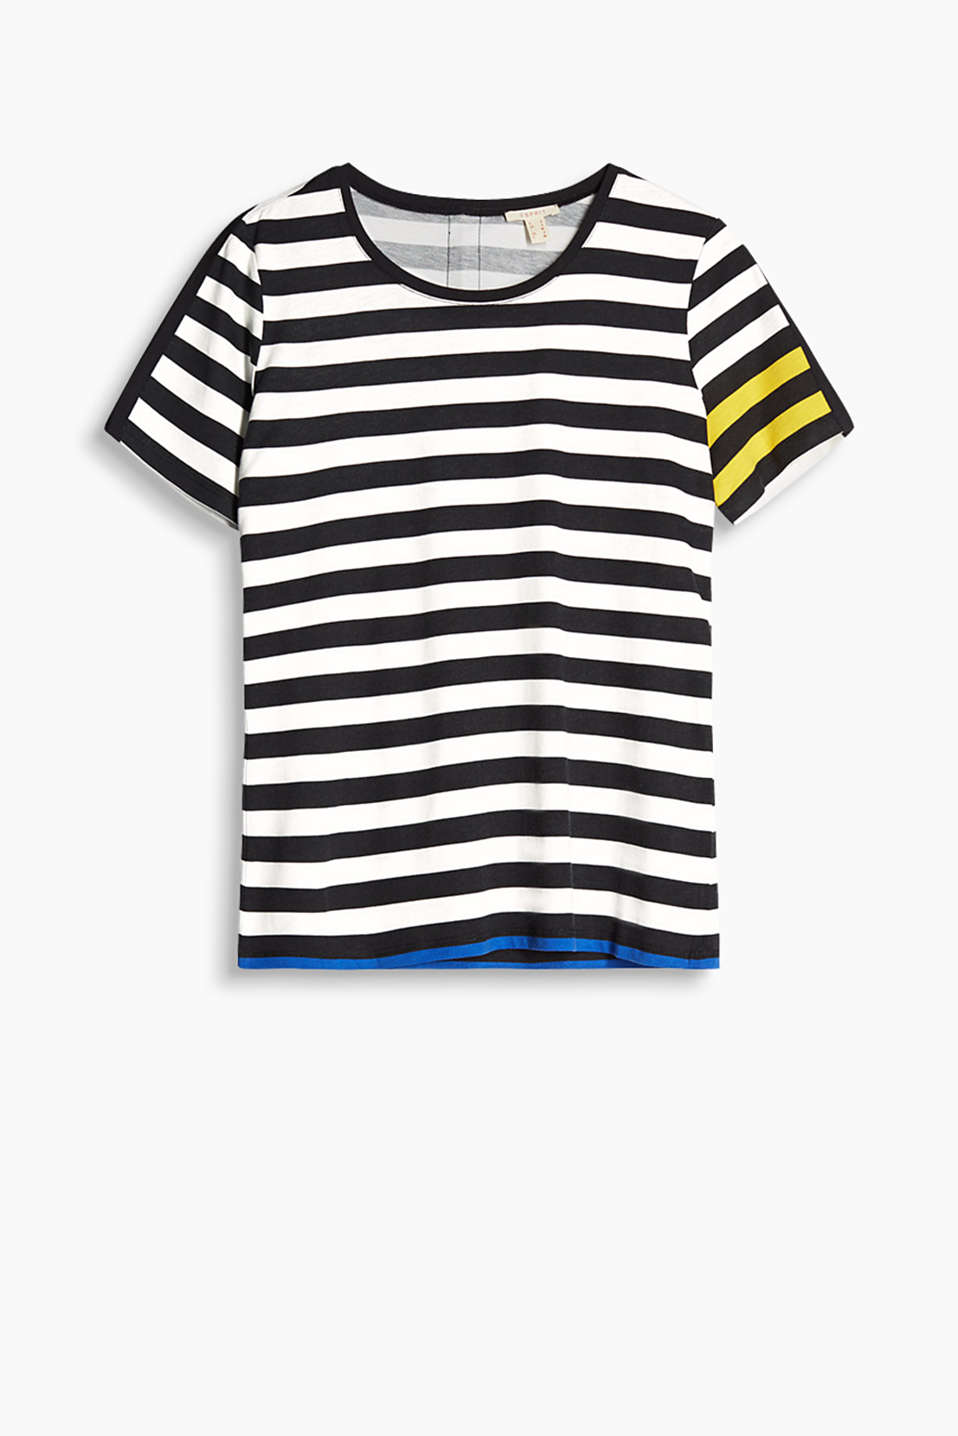 Soft striped top with contrasting details and a zip on the back, cotton blend